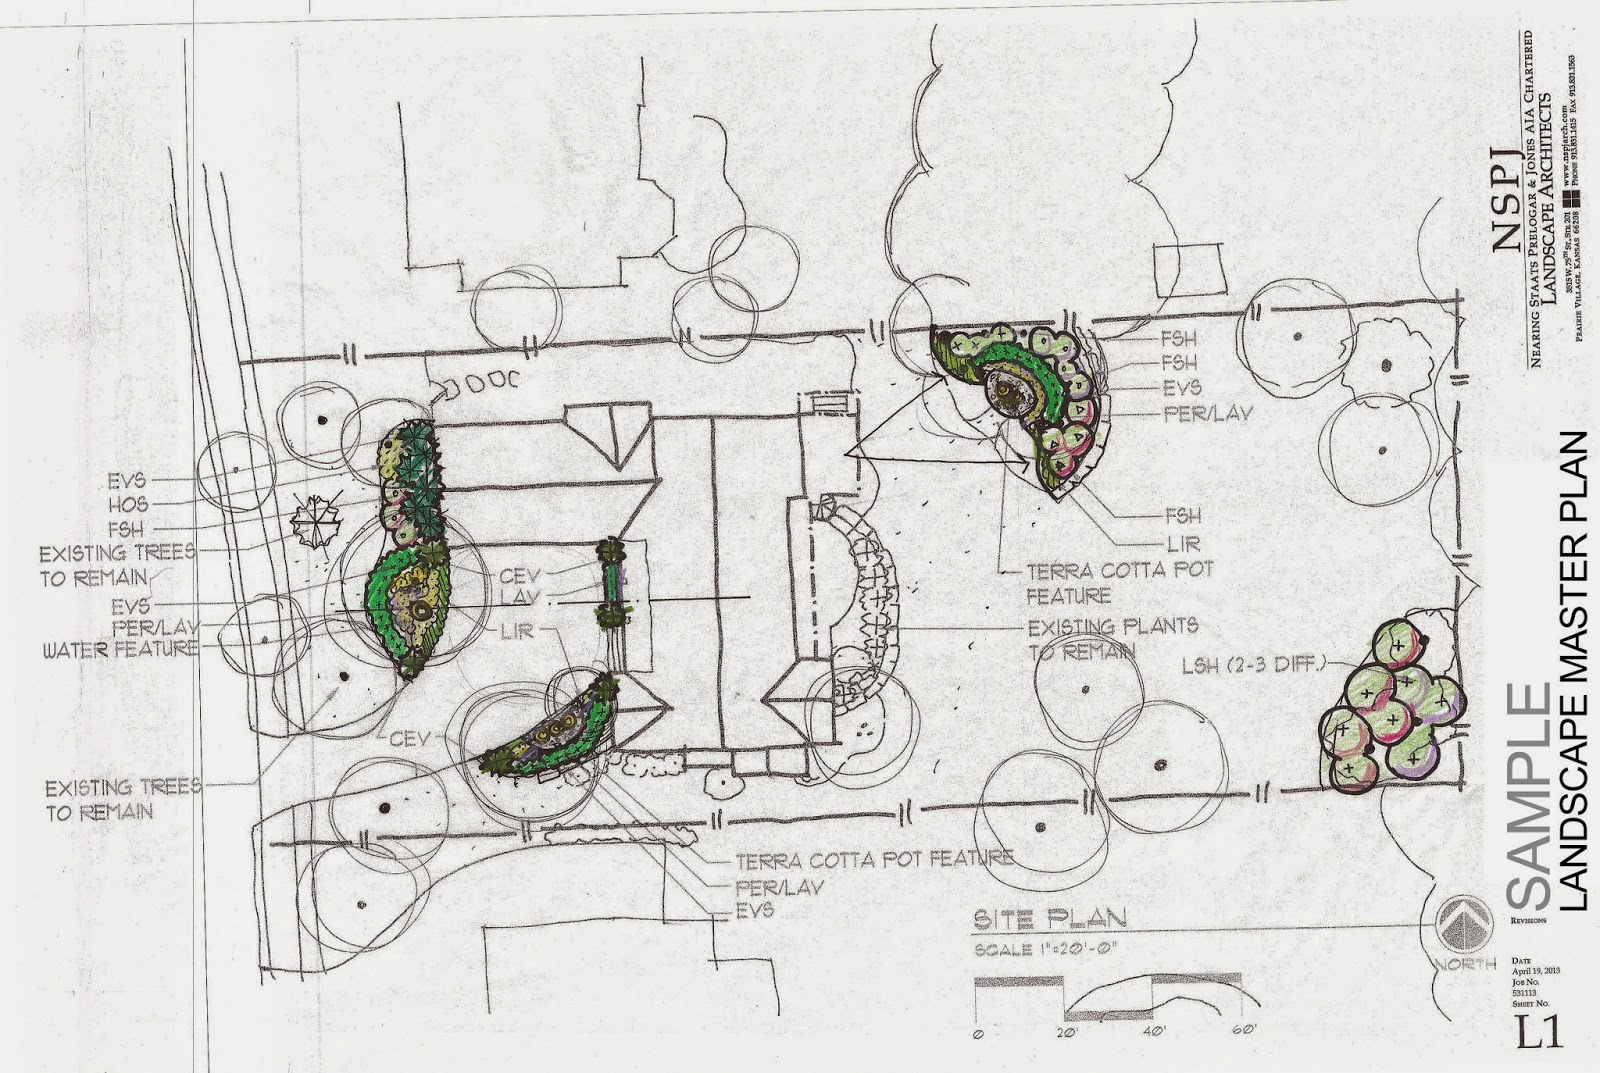 example of a landscape master plan